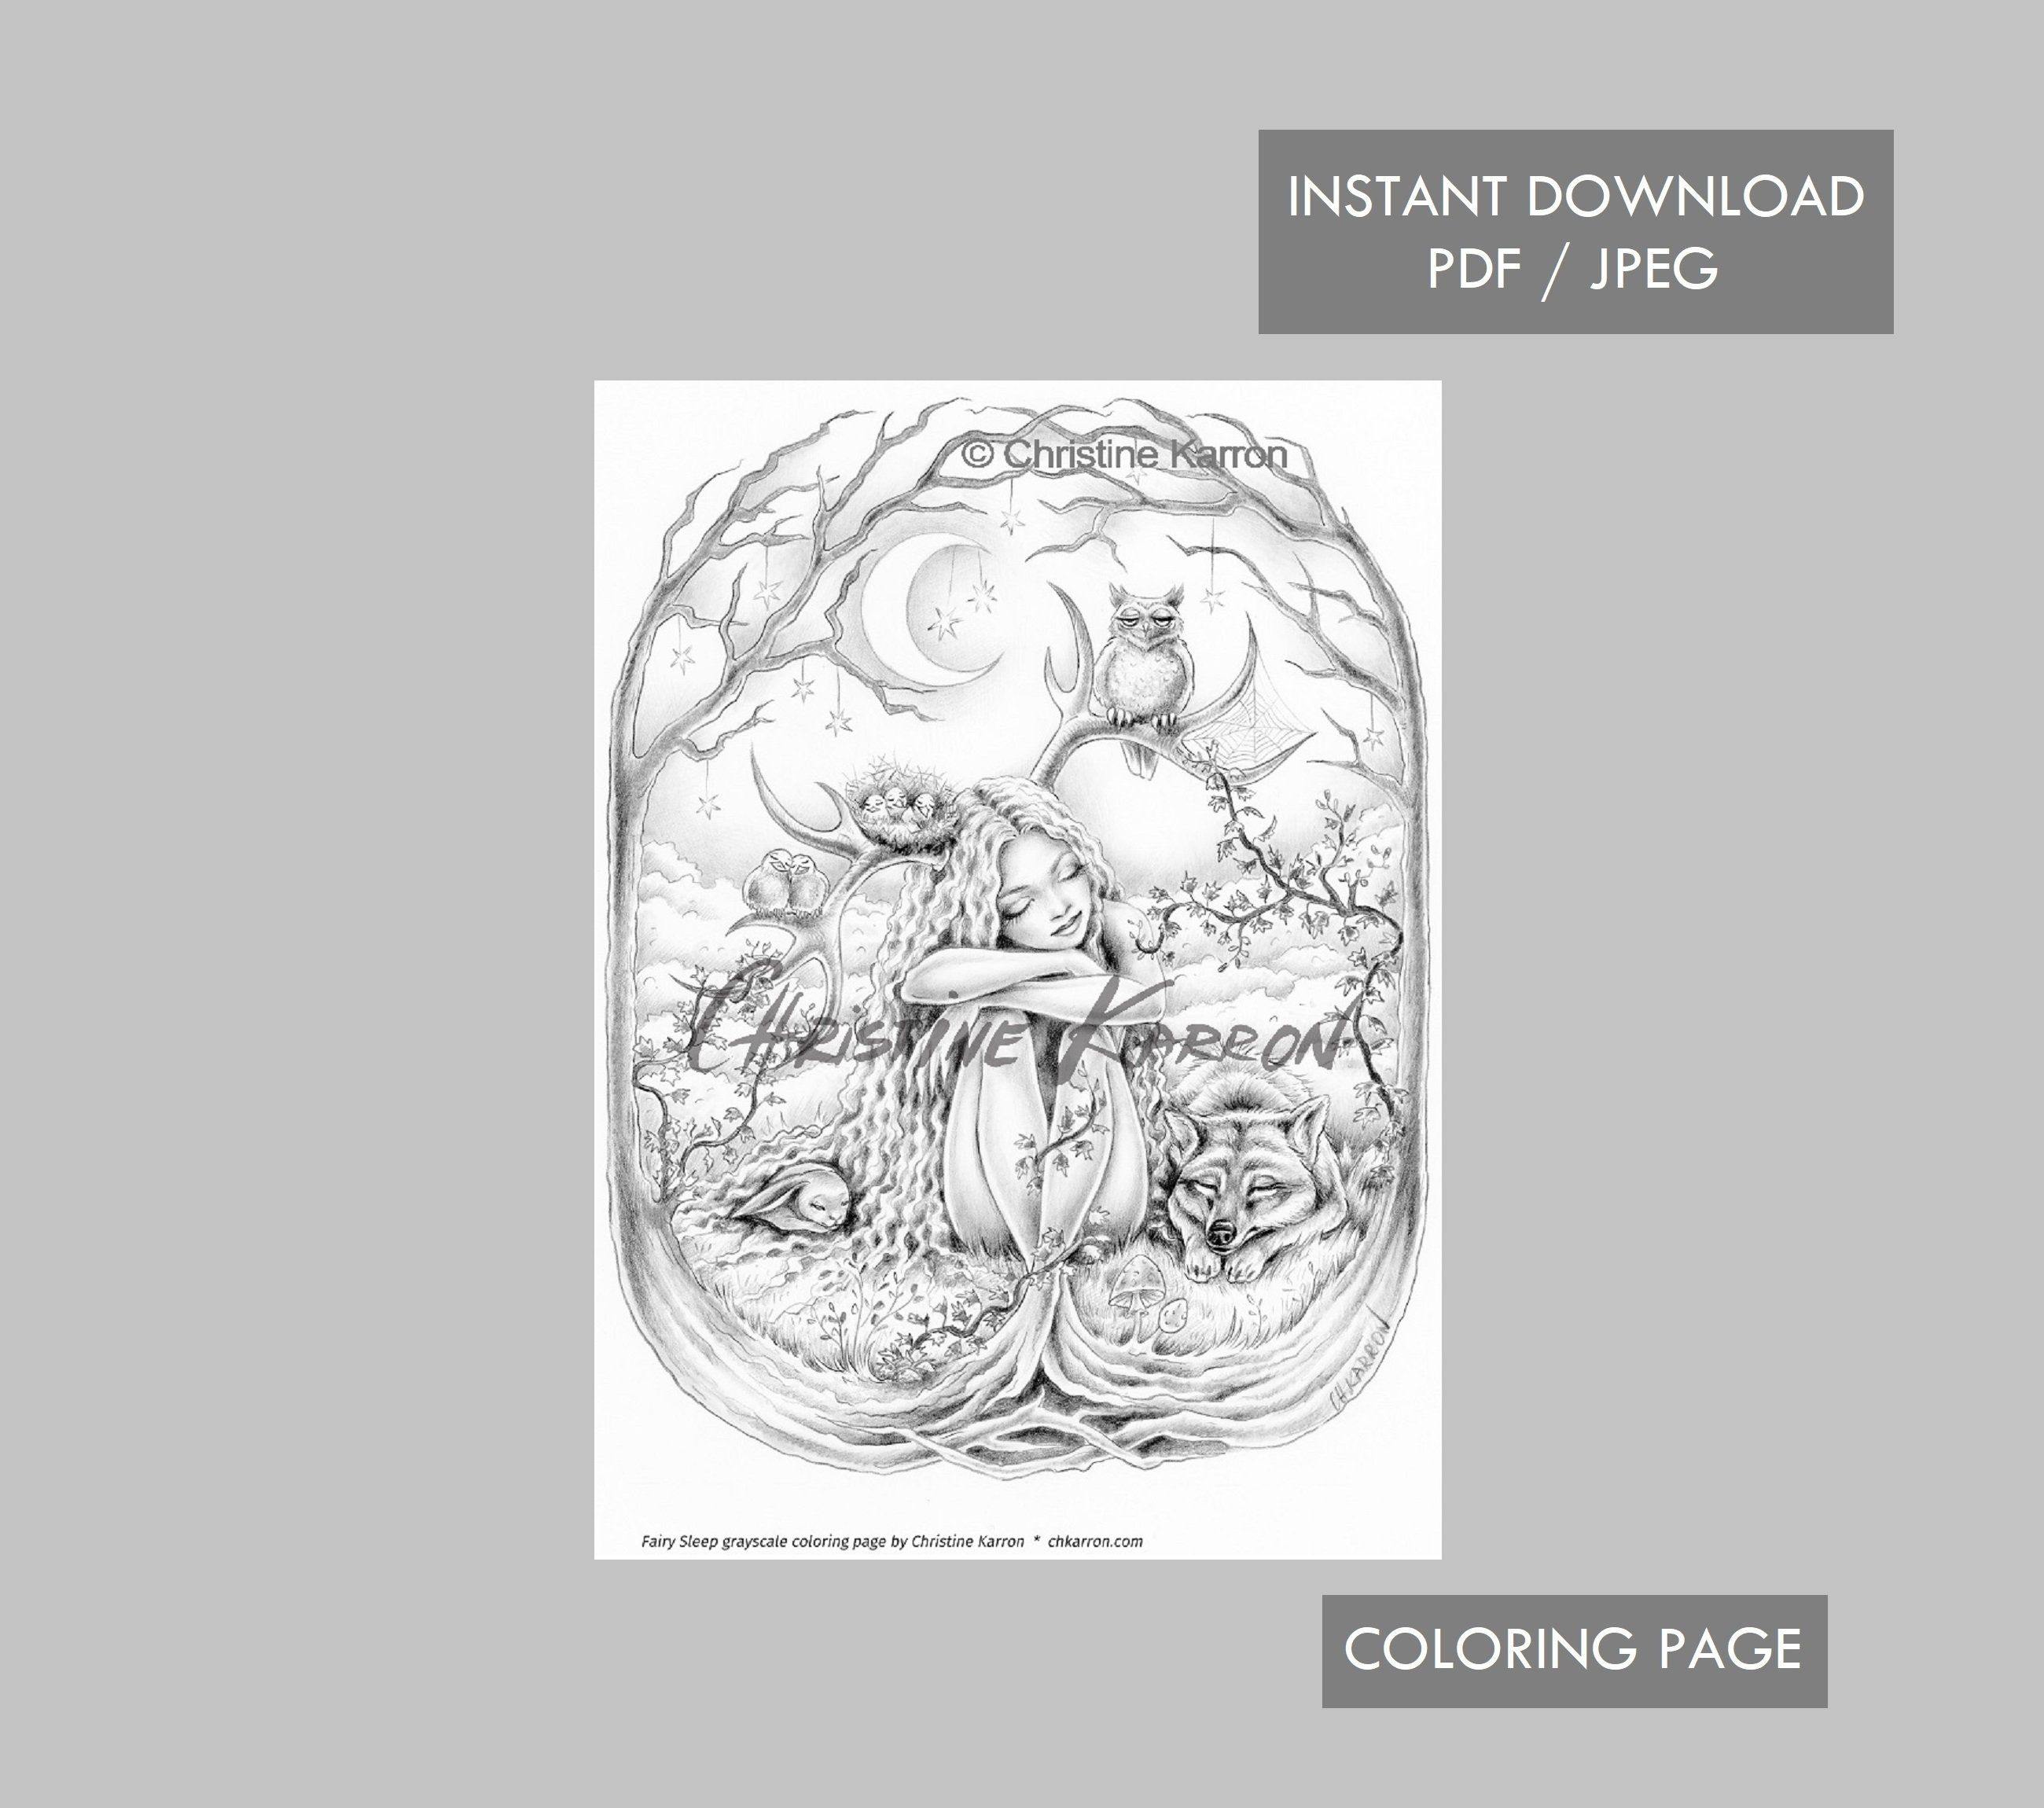 Fairy Sleep Coloring Page Grayscale Instant Download Printable File Jpeg And Pdf Coloring Pages Grayscale Coloring Books Grayscale Coloring [ 2300 x 2600 Pixel ]